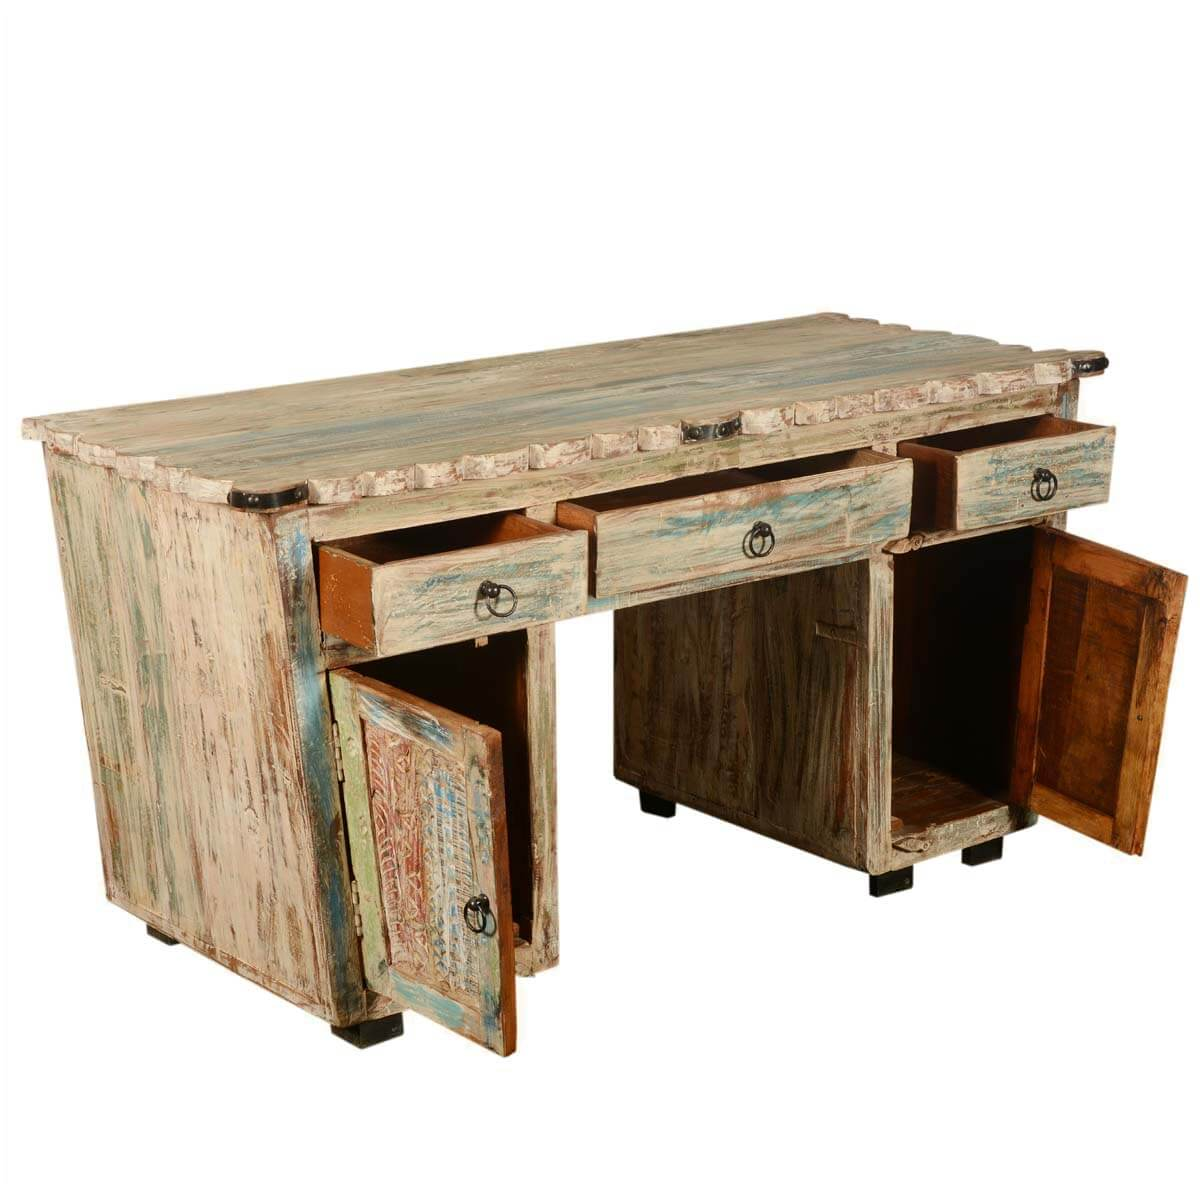 Rustic Reclaimed Wood Scalloped Edge Pedestal Desk